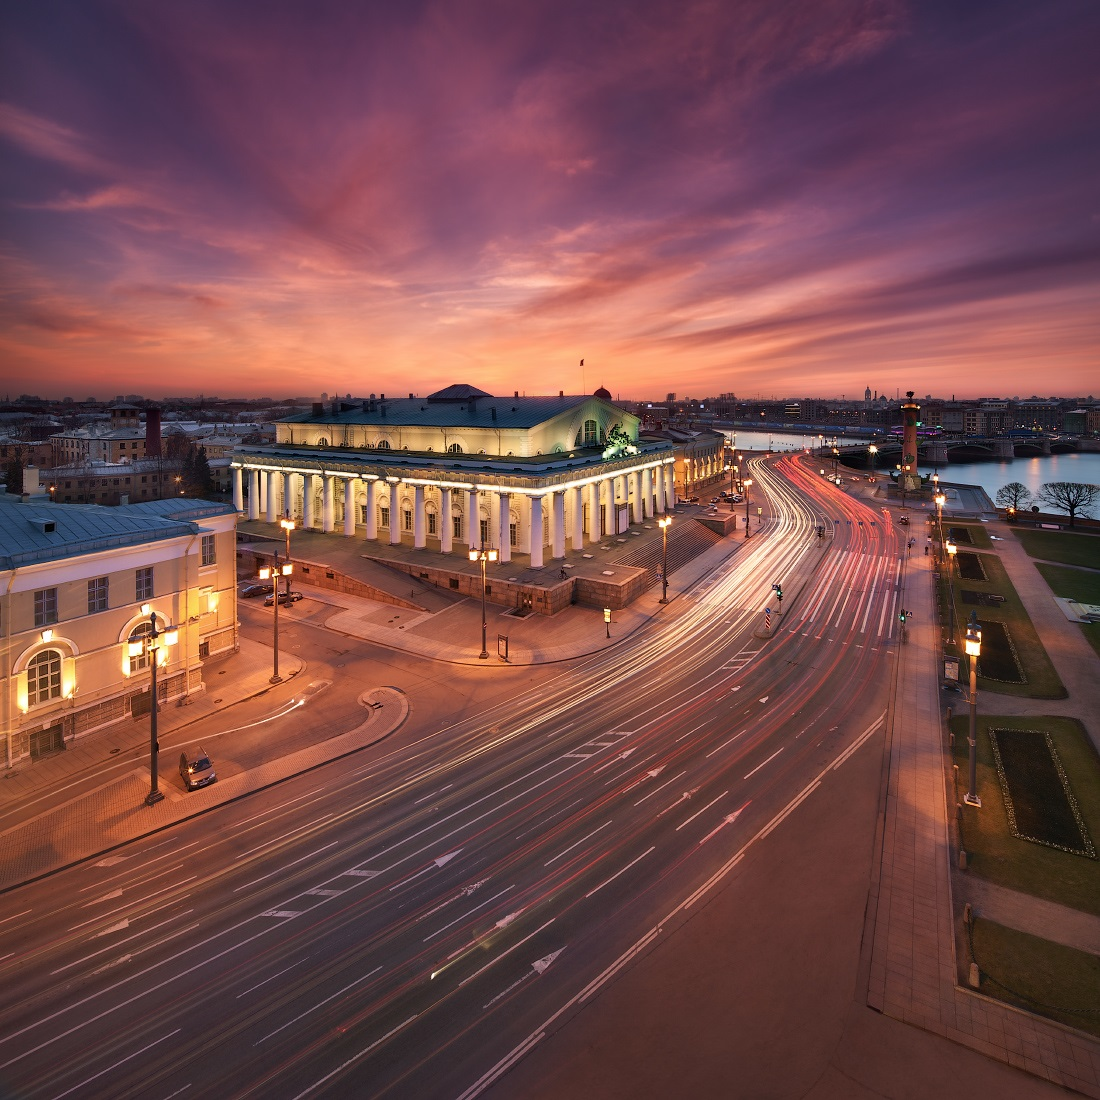 Night Saint Petersburg: Amazing photos of the city by Sergey Louks - 39